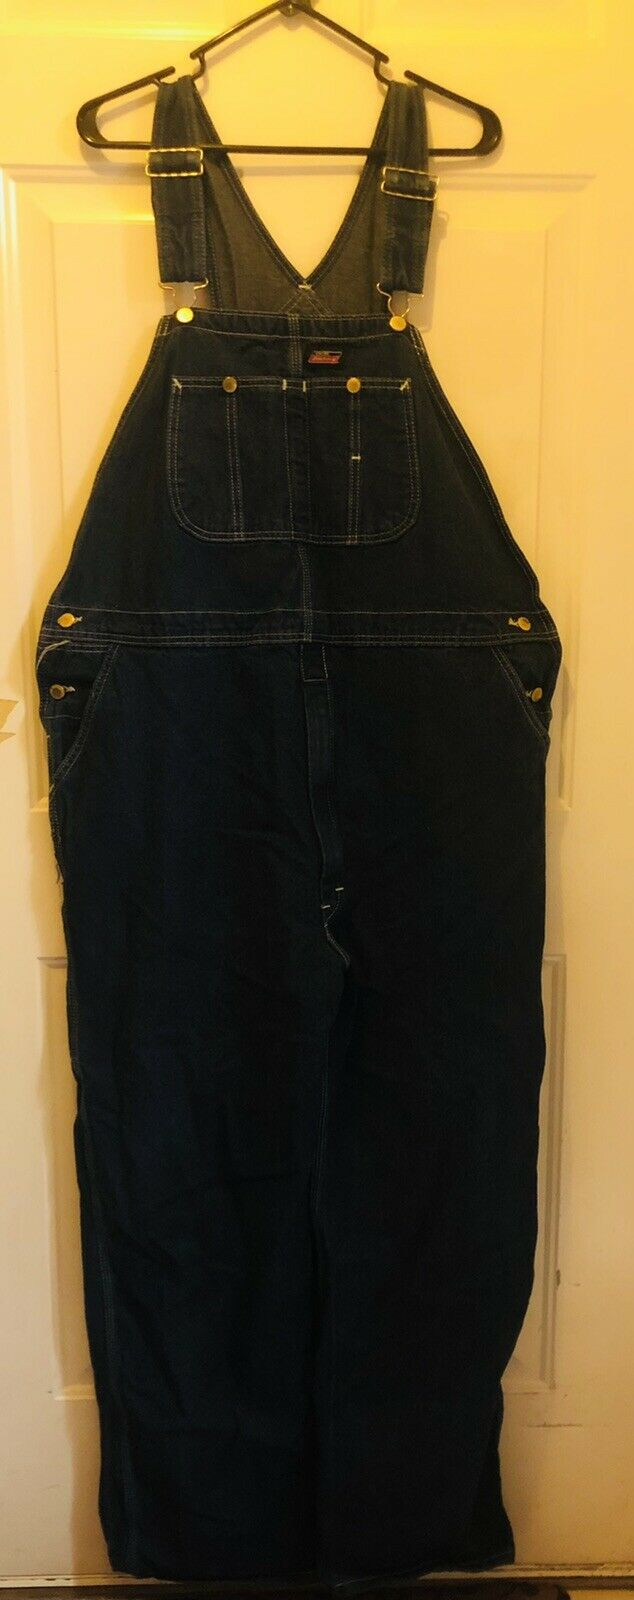 Dickies Jeans  Bib Overalls Size 42x32 - image 3